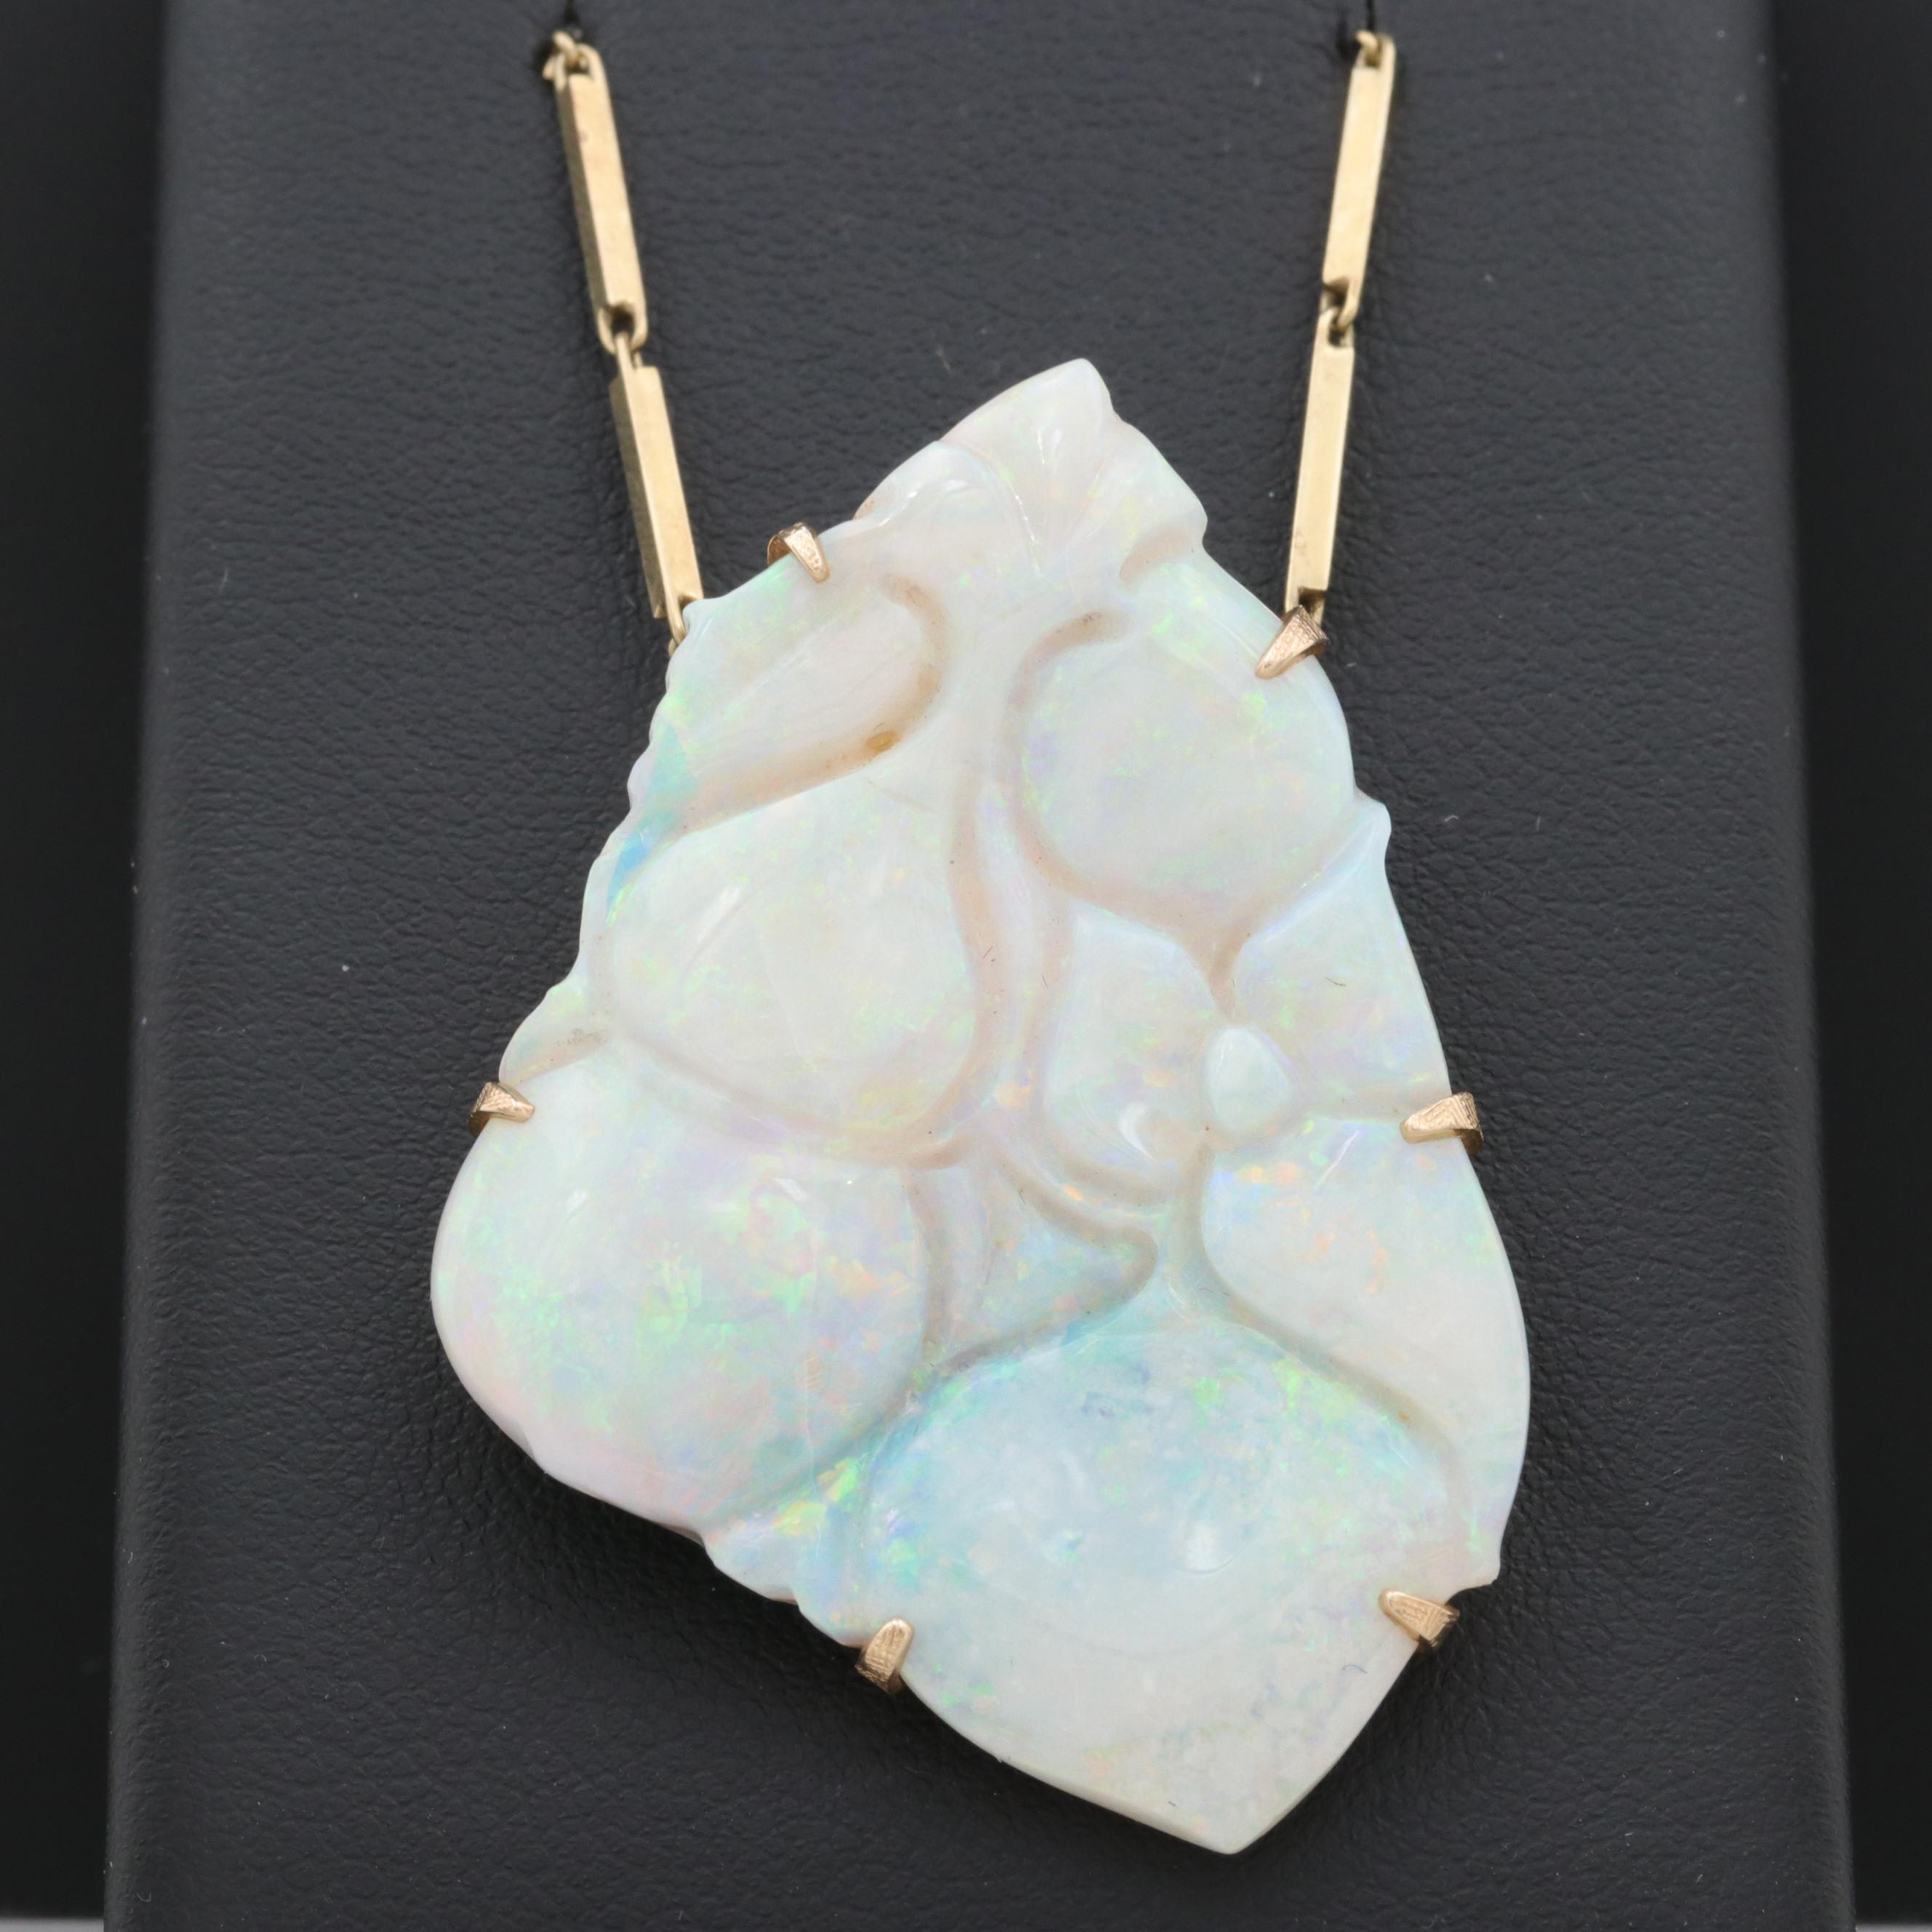 14K Yellow Gold Freeform Carved Opal Cabochon Pendant Necklace